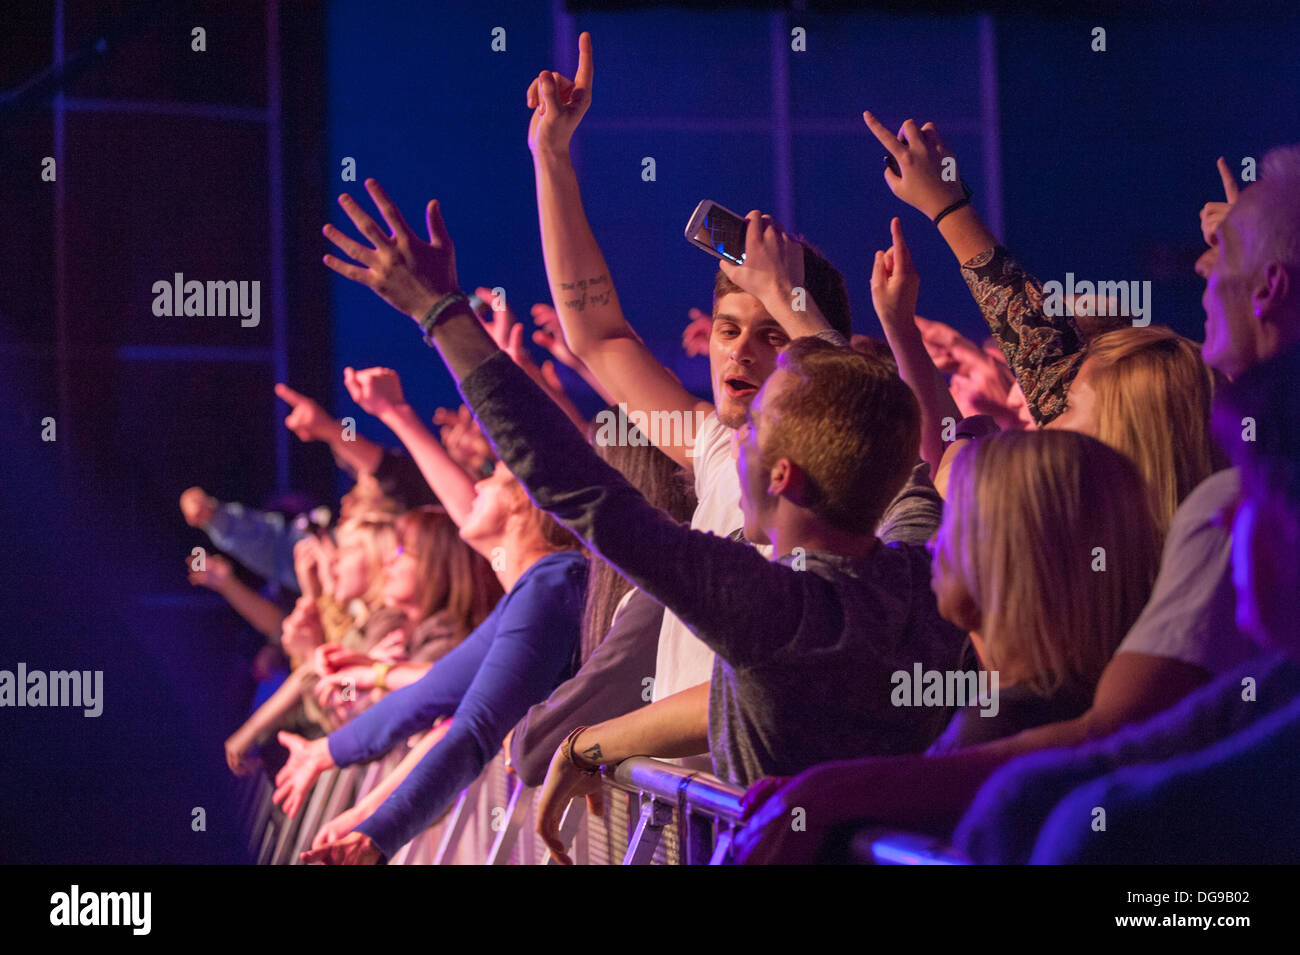 Music fans at a gig crushed against the barrier at the front cheering, clapping and screaming at a band on stage - Stock Image